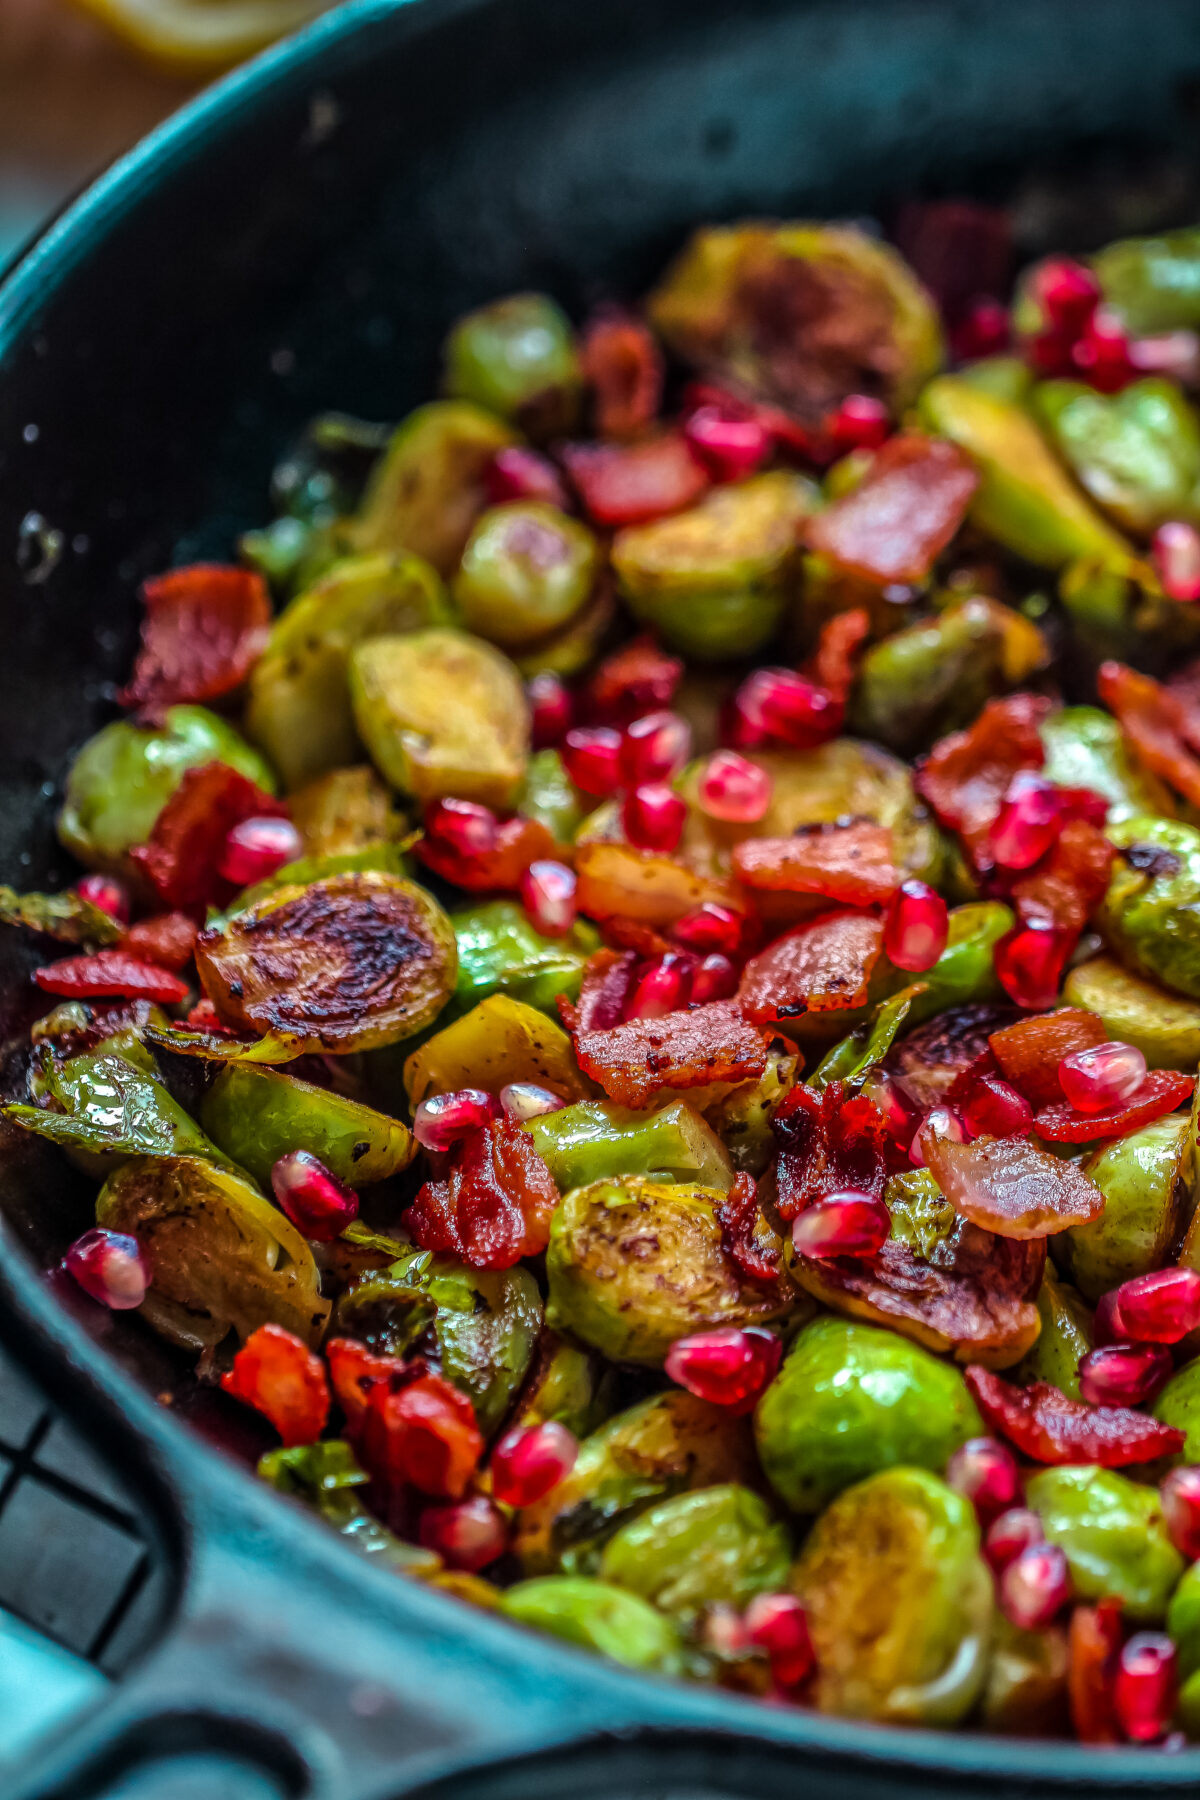 Pan Roasted Brussels Sprouts with Bacon & Pomegranate makes for a tasty holiday side dish that works just as easily for a weeknight side.